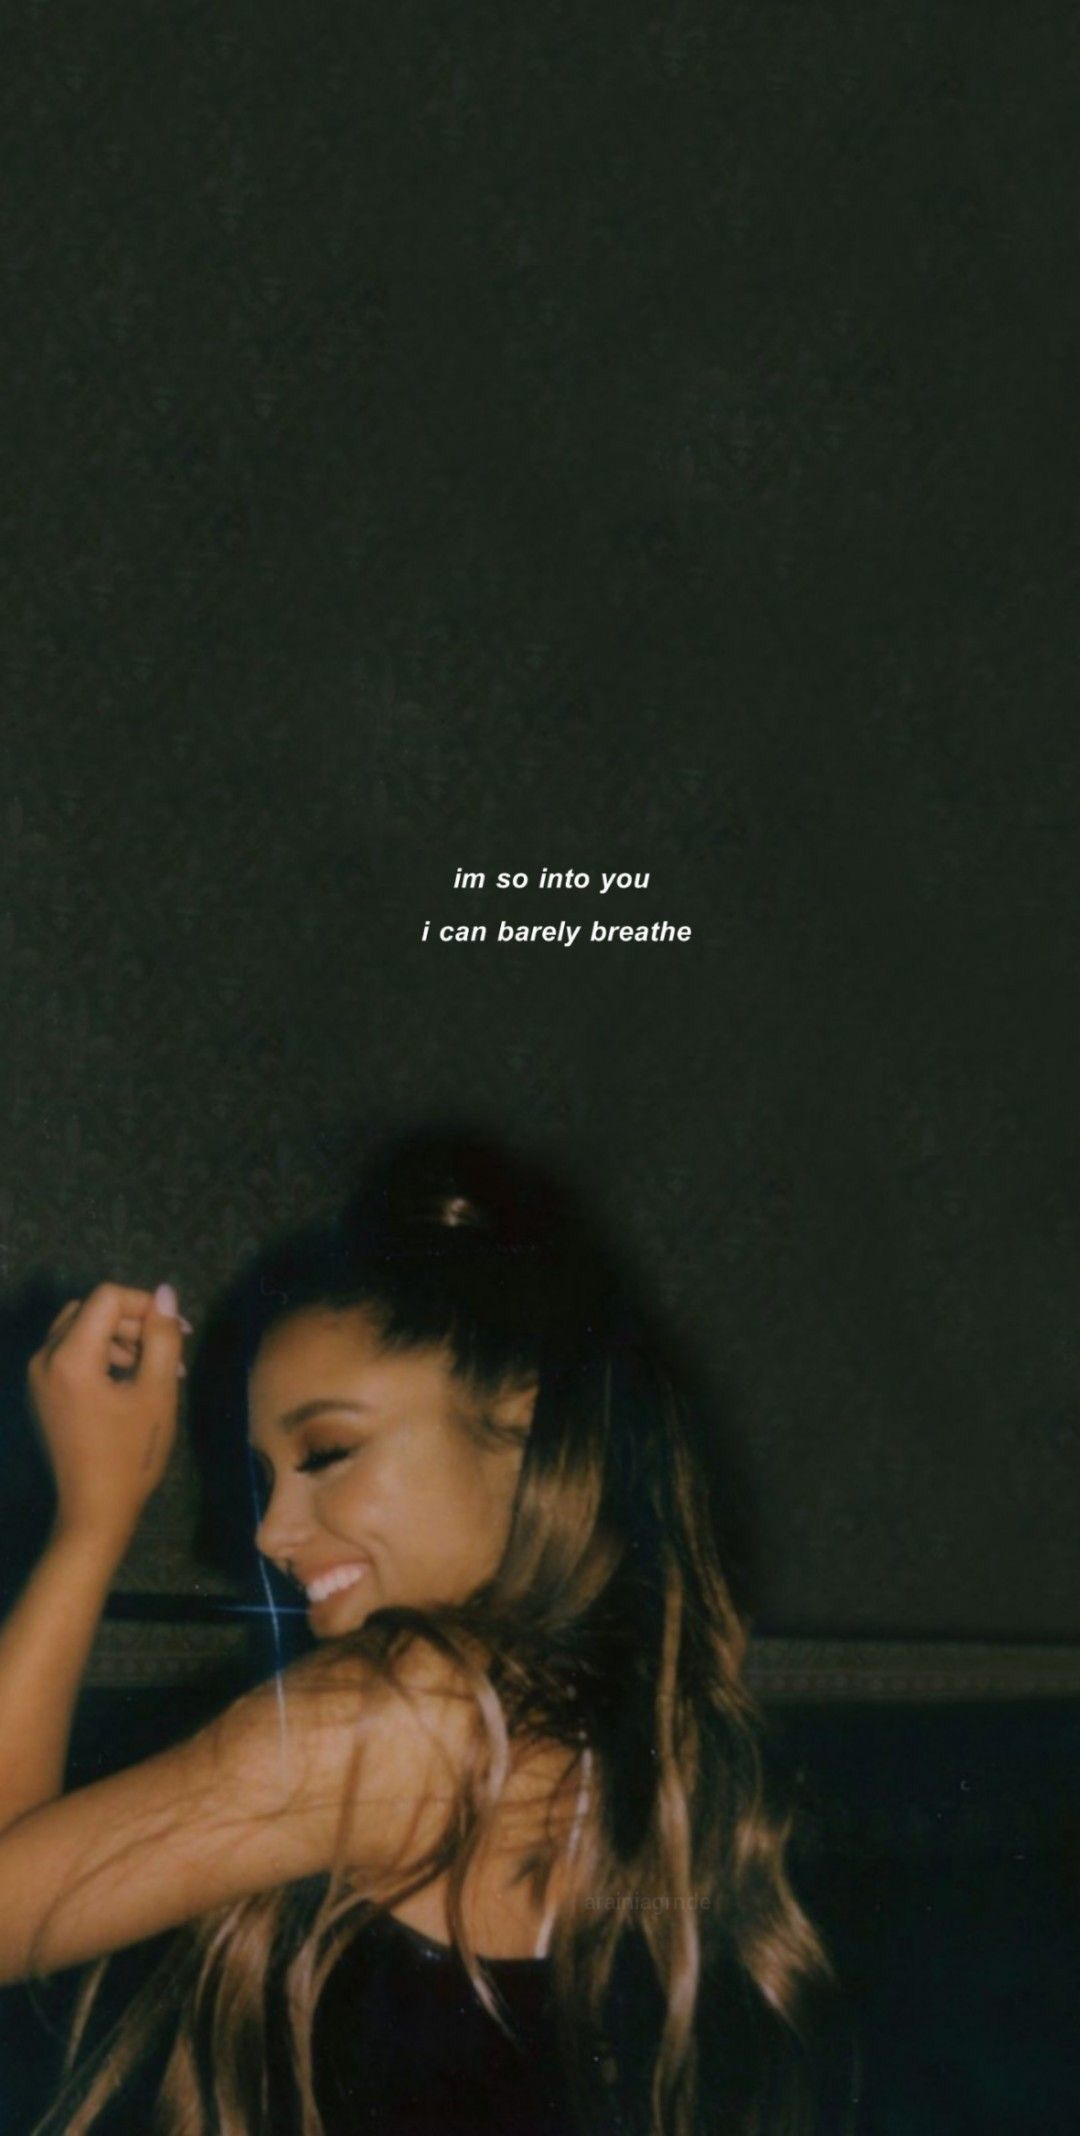 Ariana | My Queens in 2019 | Ariana grande quotes, Ariana ...